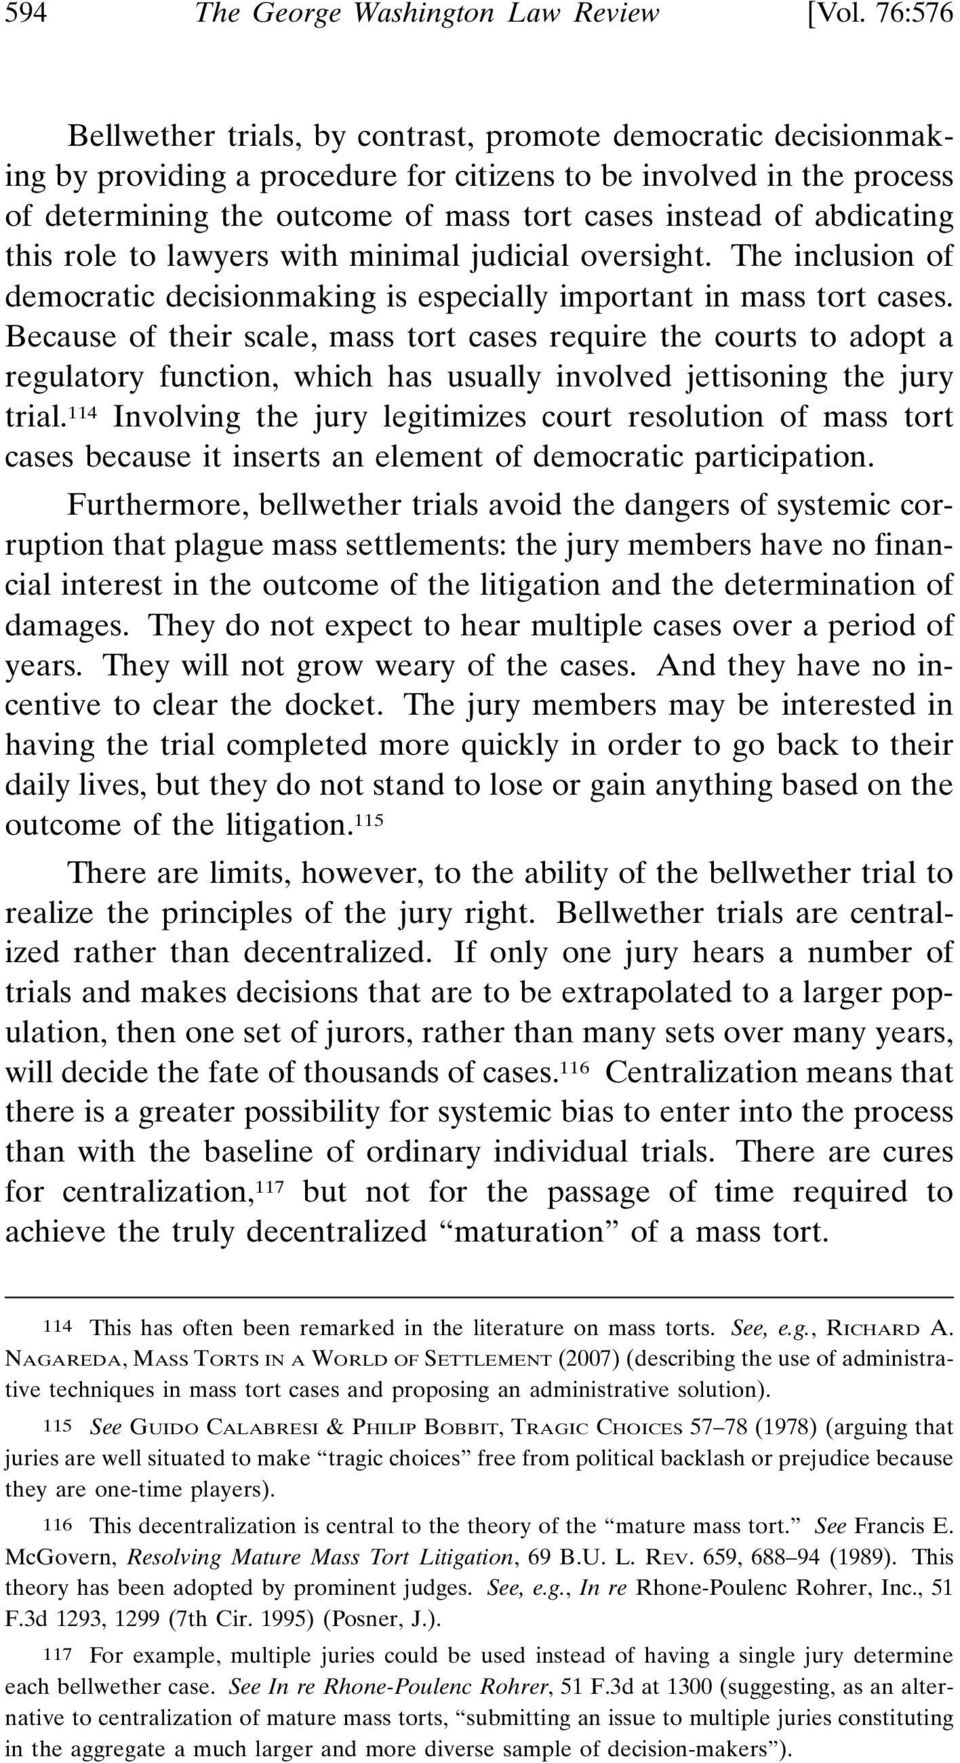 abdicating this role to lawyers with minimal judicial oversight. The inclusion of democratic decisionmaking is especially important in mass tort cases.